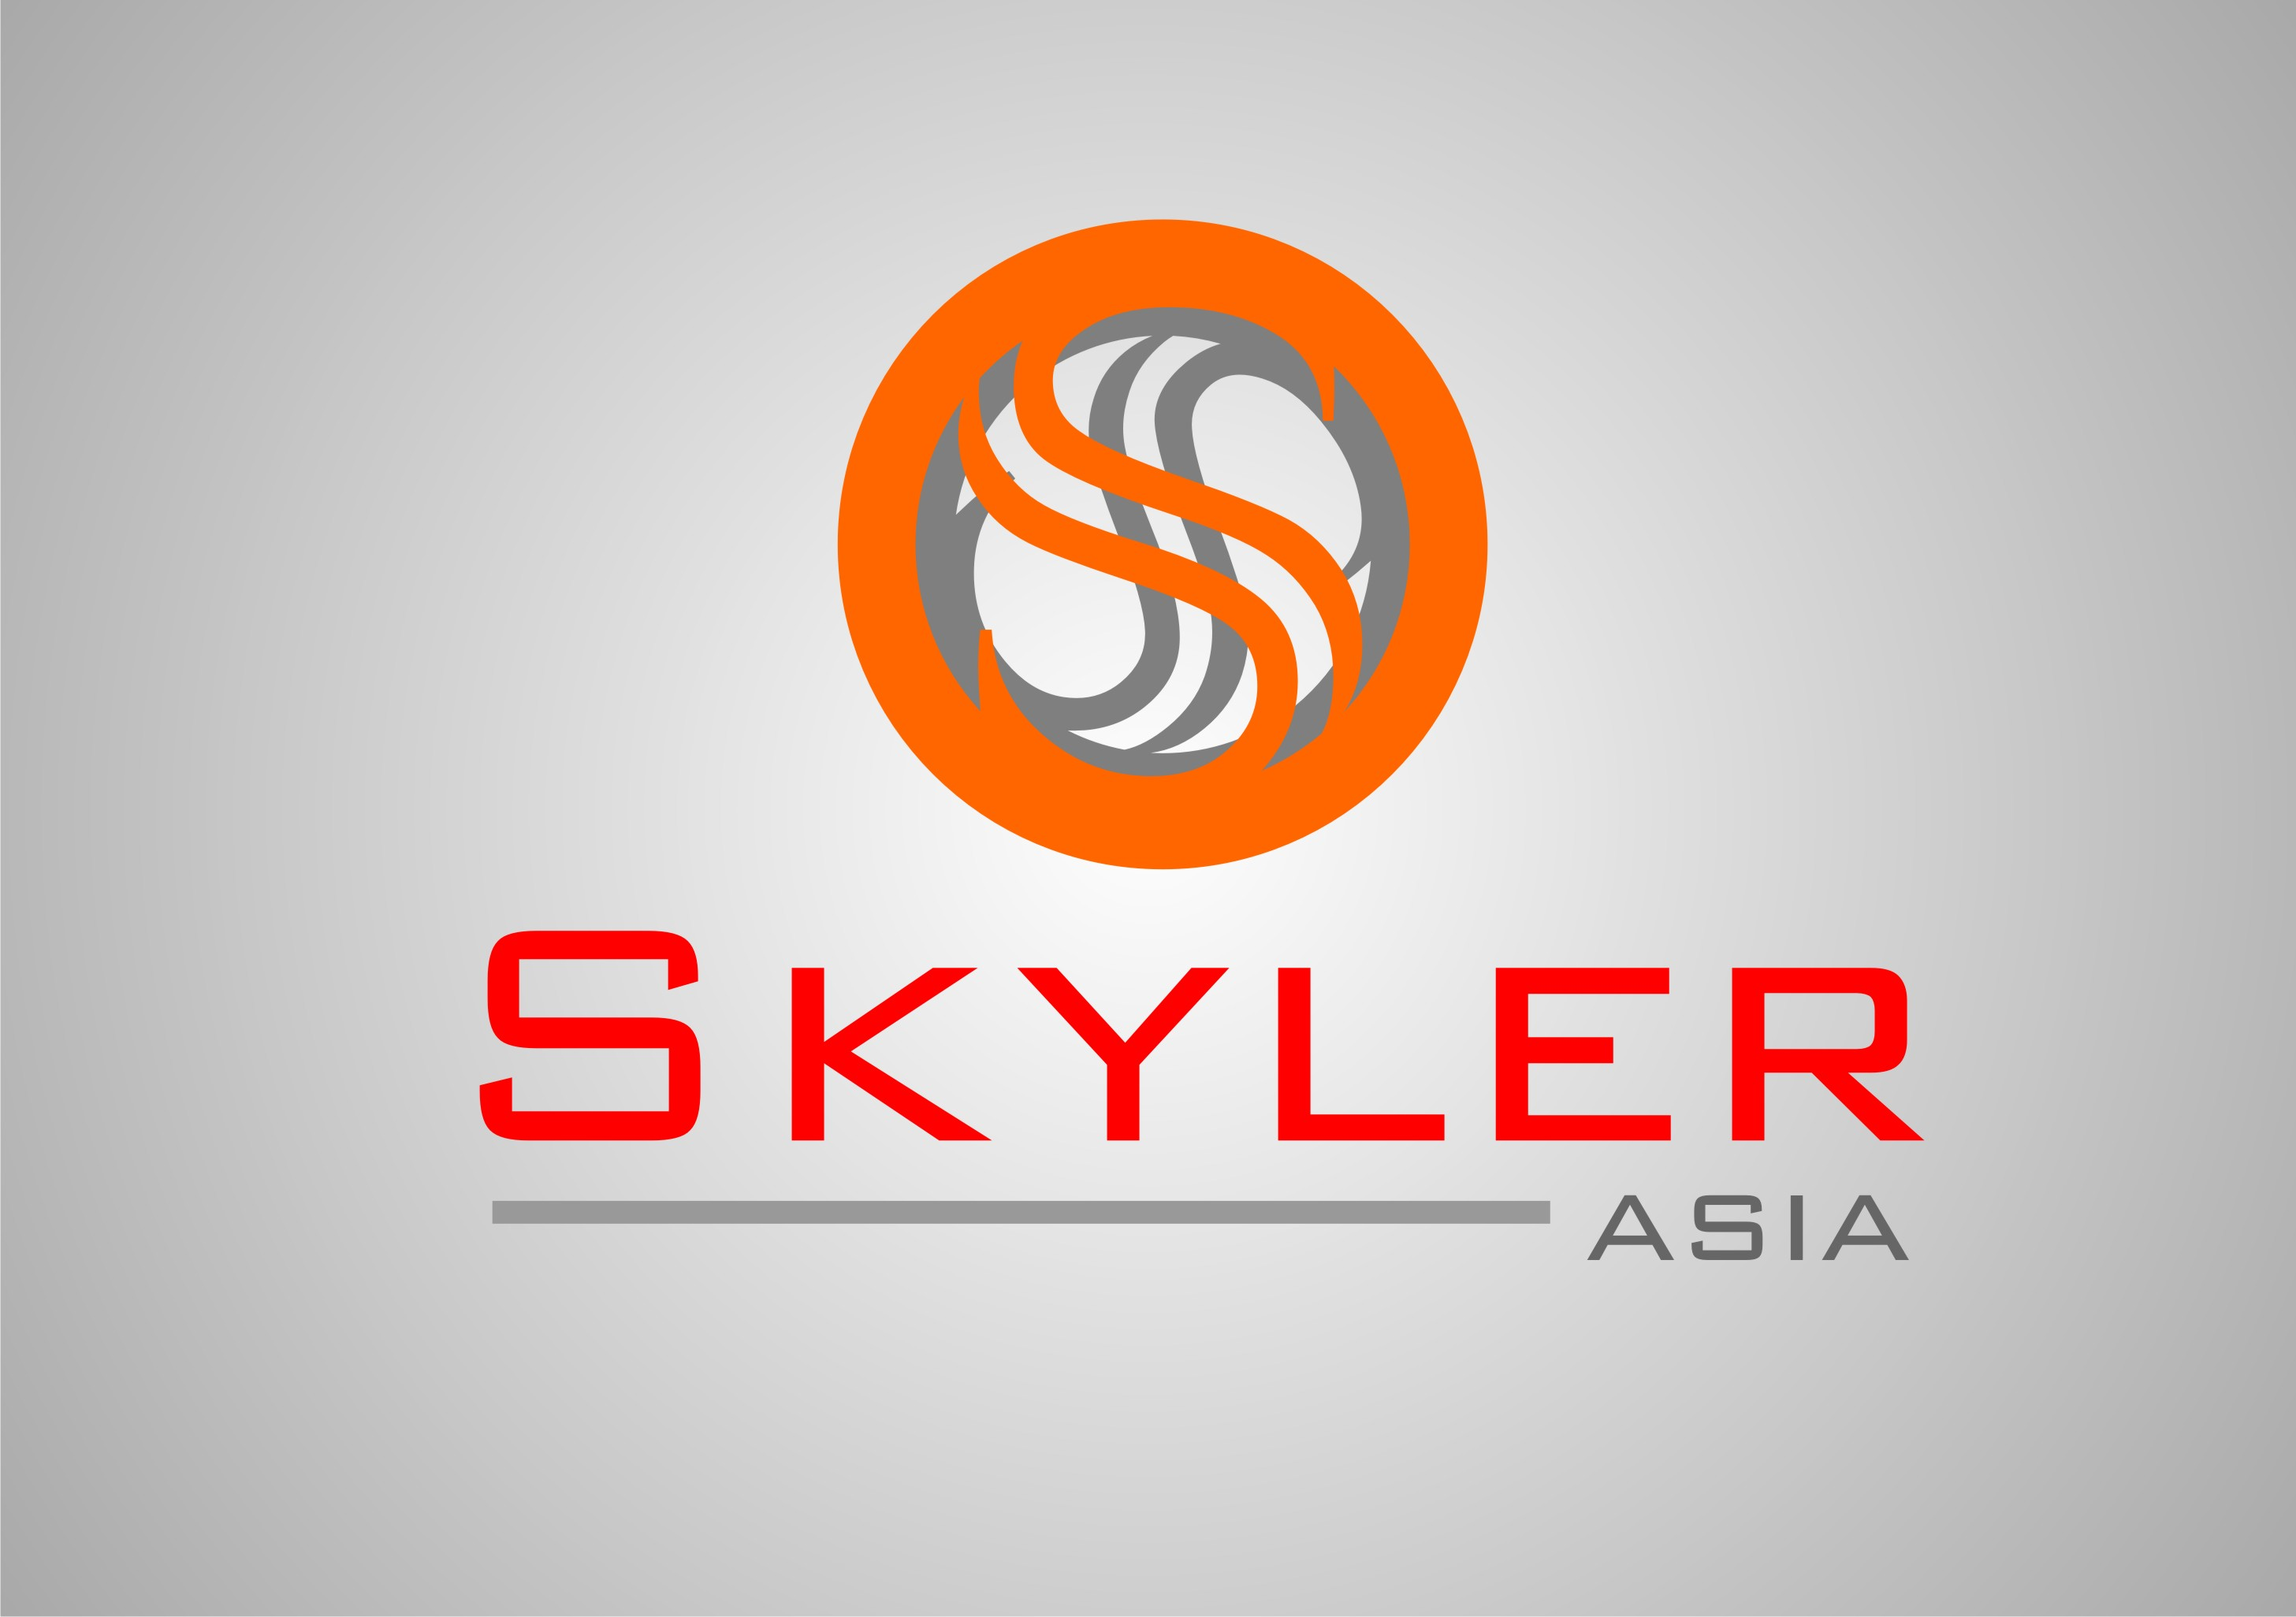 Logo Design by Choirul Jcd - Entry No. 142 in the Logo Design Contest Artistic Logo Design for Skyler.Asia.